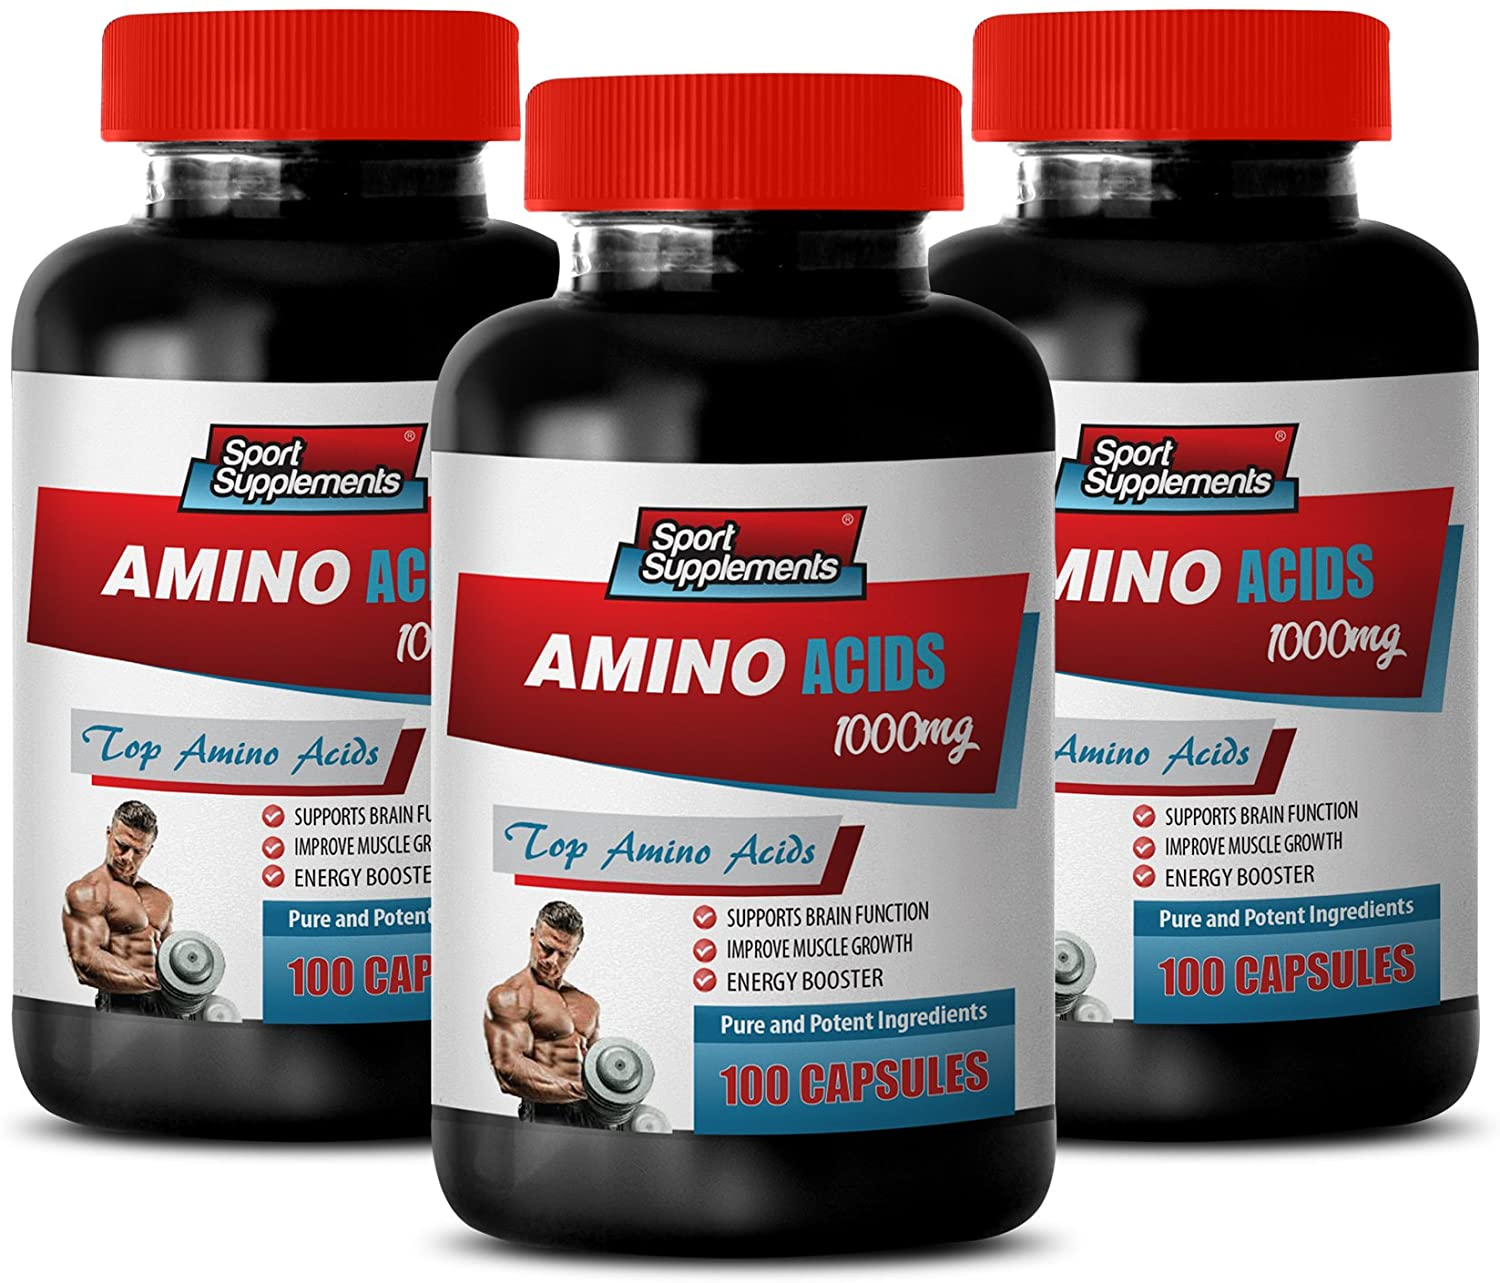 pre Workout Complex - Amino ACIDS 1000Mg - TOP Amino ACIDS Blend - l-theanine Supplement - 3 Bottles 300 Capsules